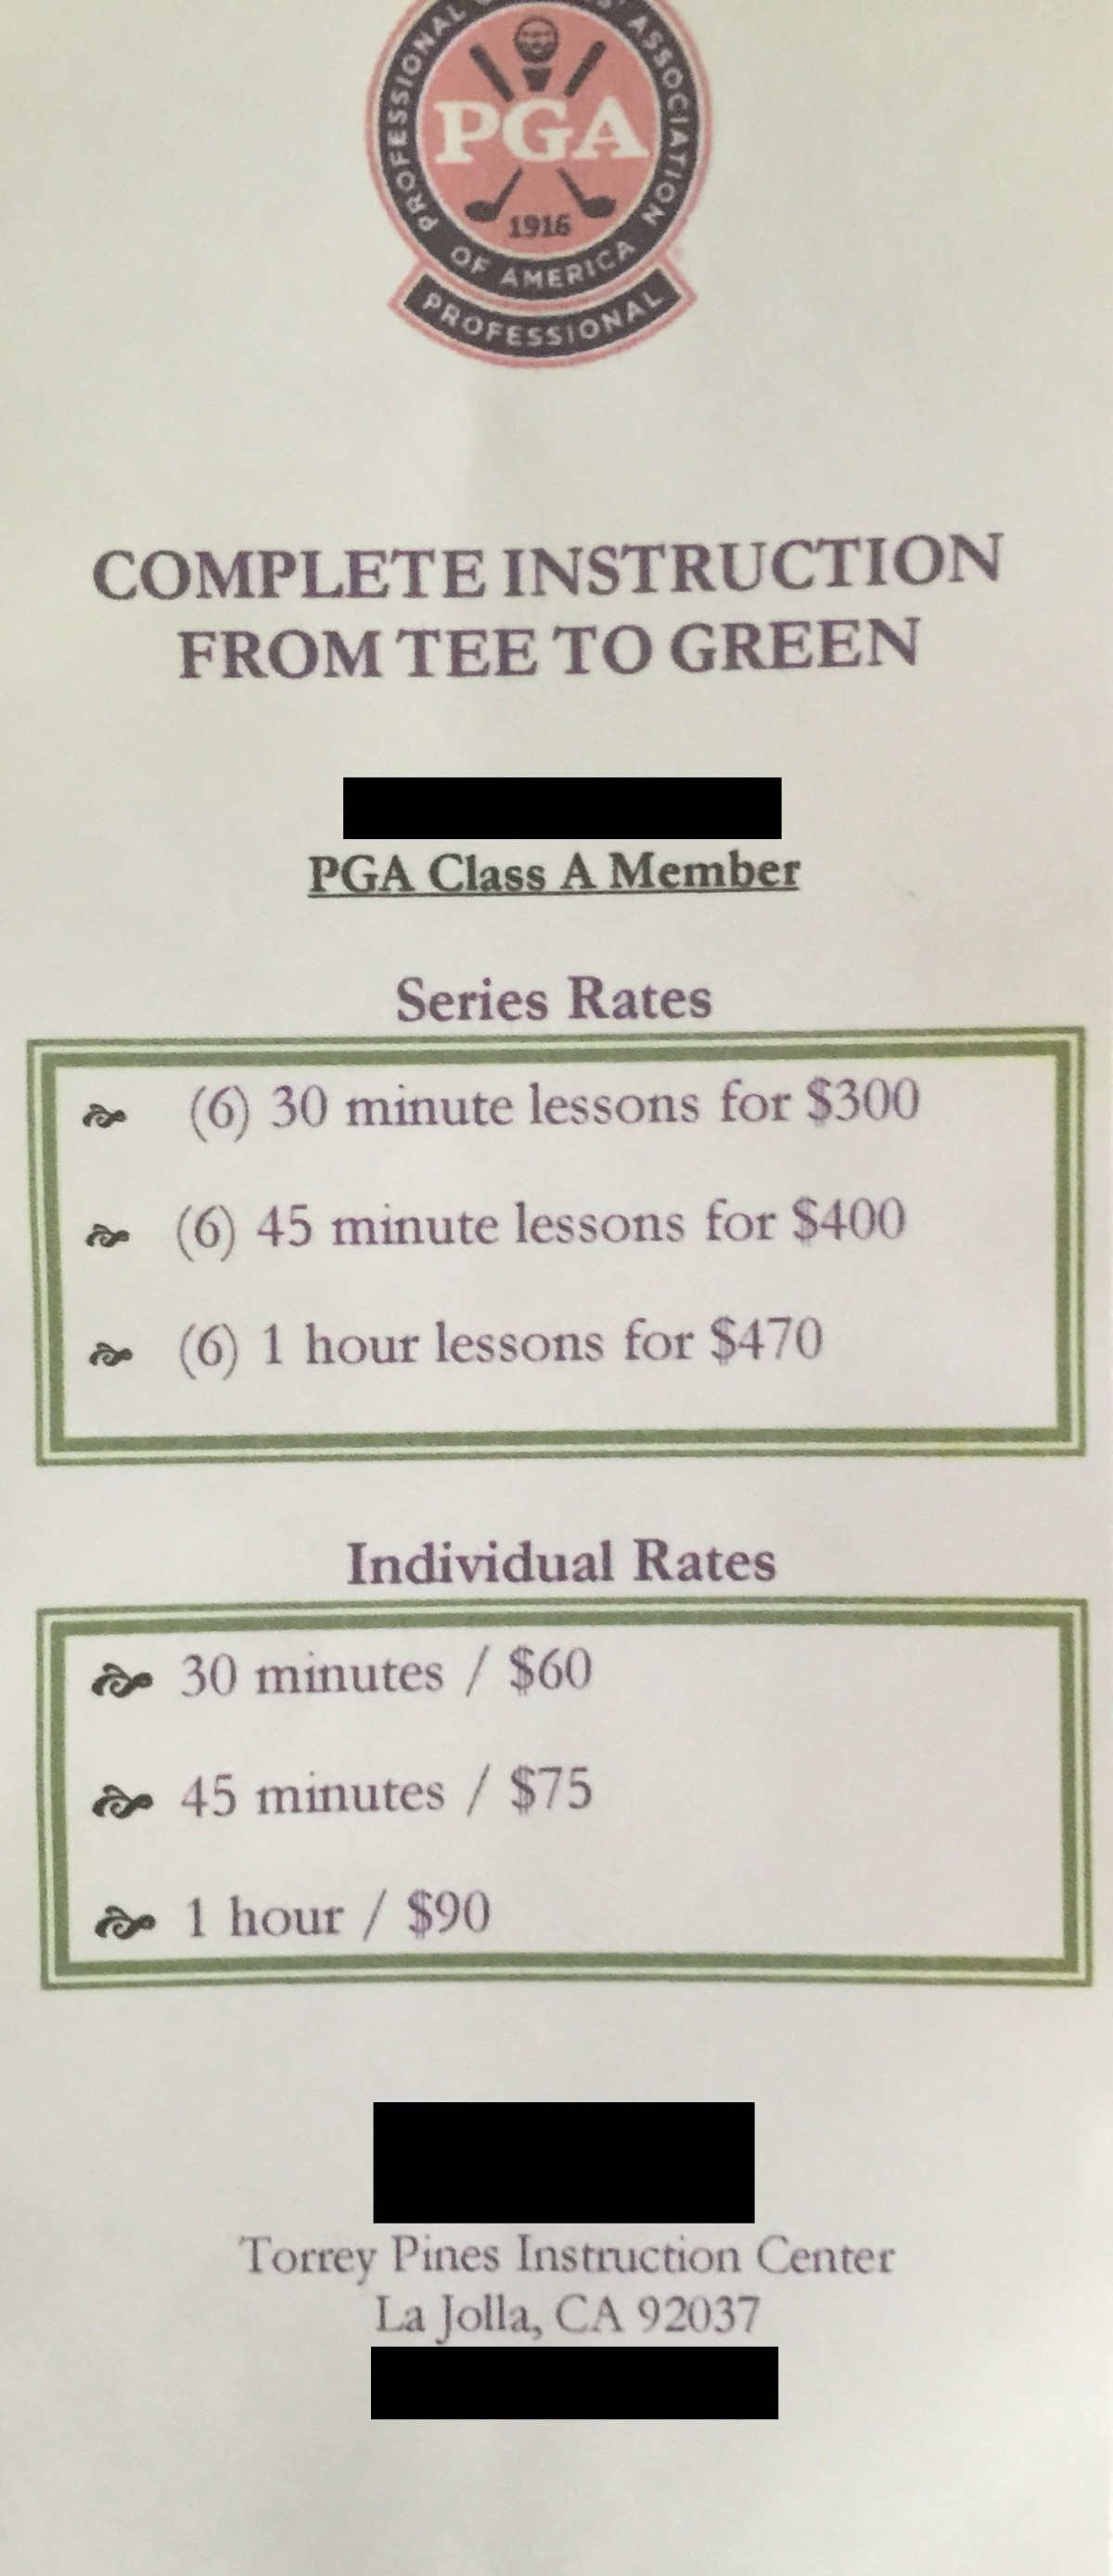 The Power and Distance Challenge is not going to cost you an arm and a leg like private lessons would. Professional PGA instructors can charge upwards of $90 to $100 per hour.